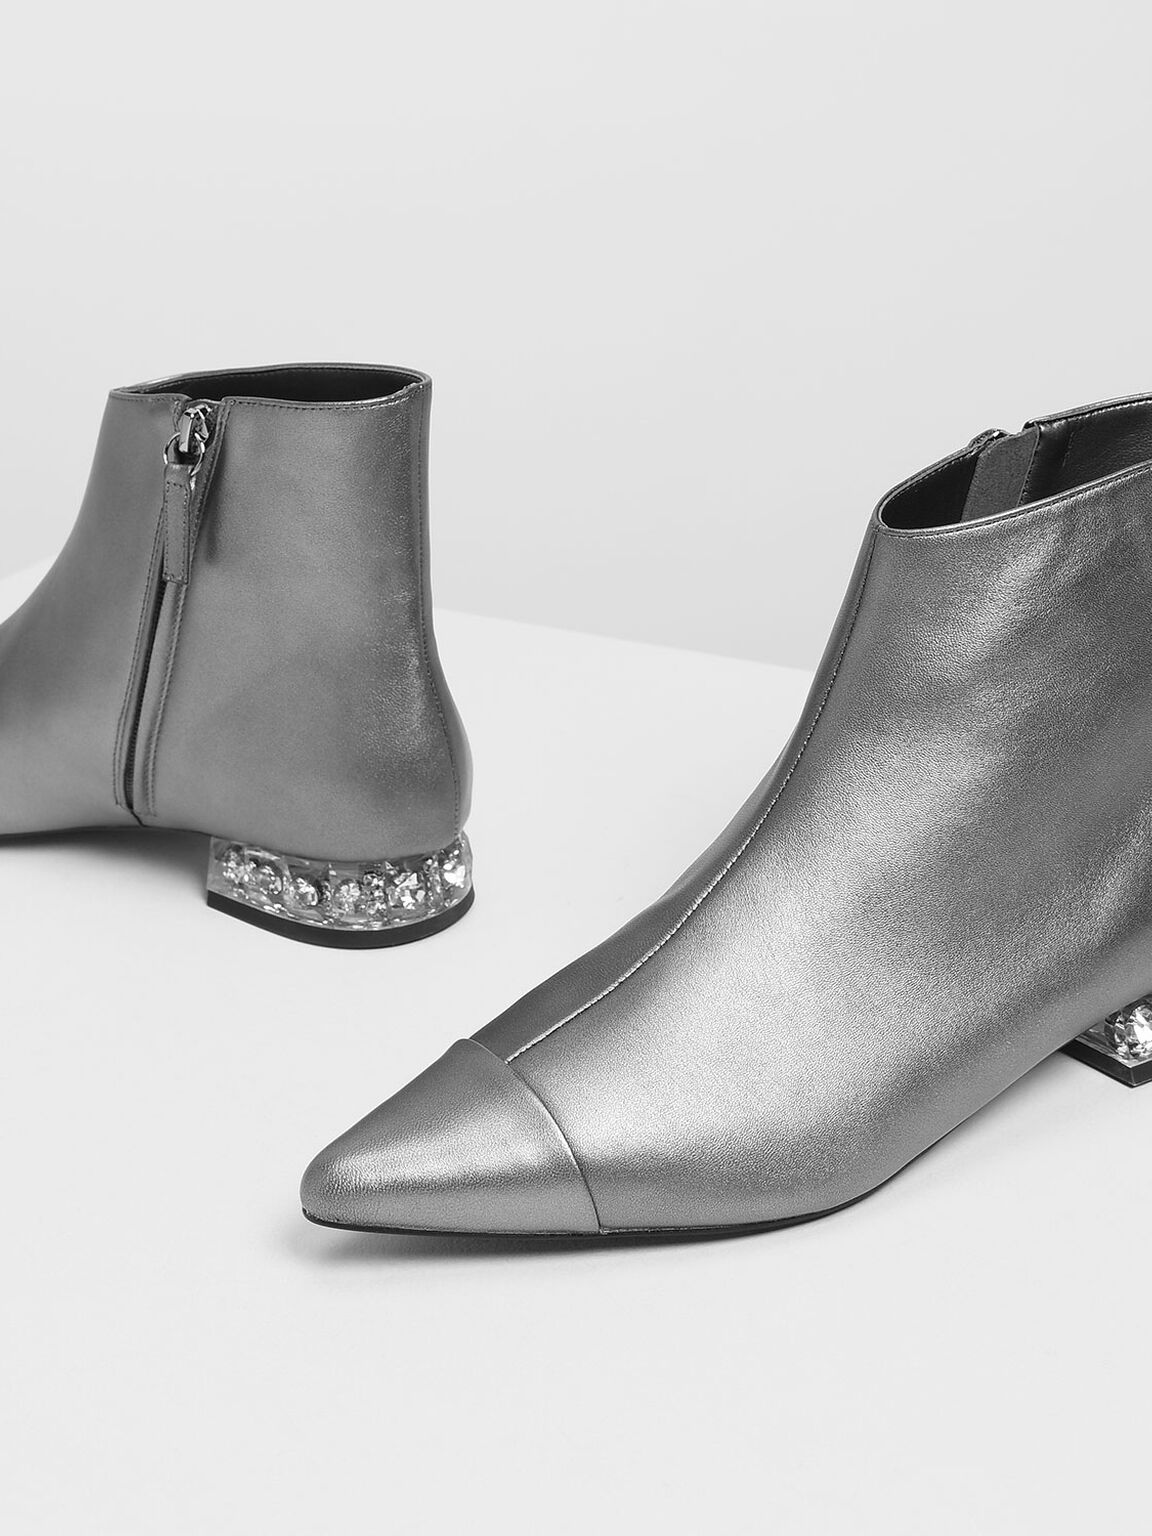 Faceted Lucite Heel Leather Boots, Pewter, hi-res